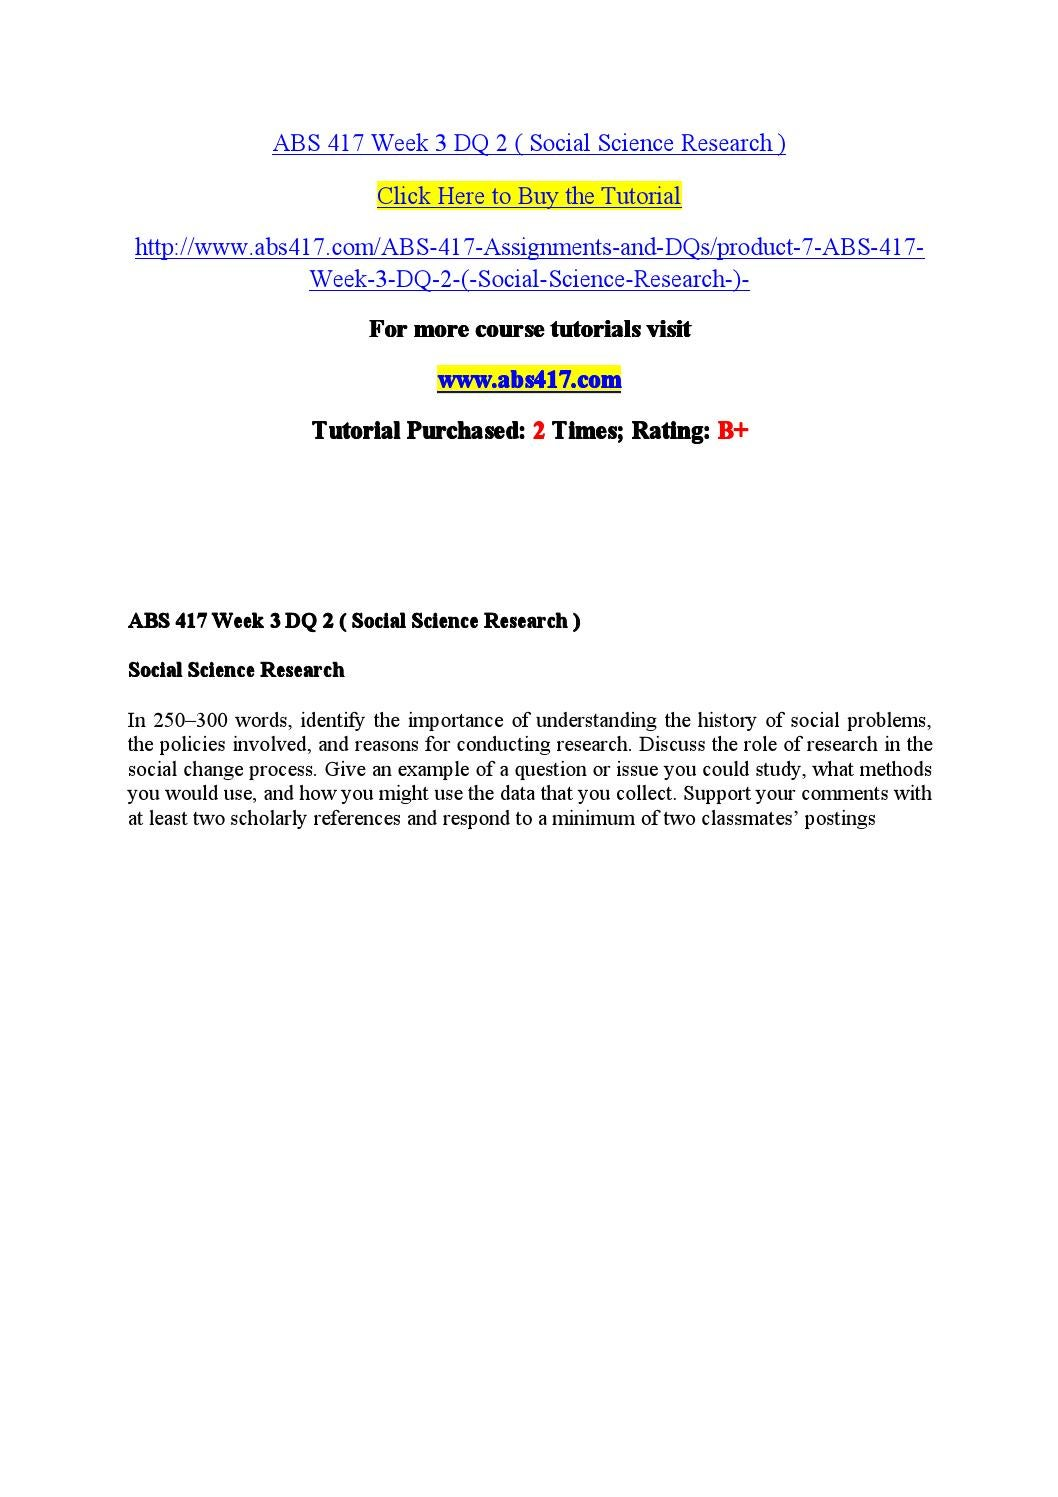 Abs 417 Week 3 Dq 2 Social Science Research By Kenne71 Issuu